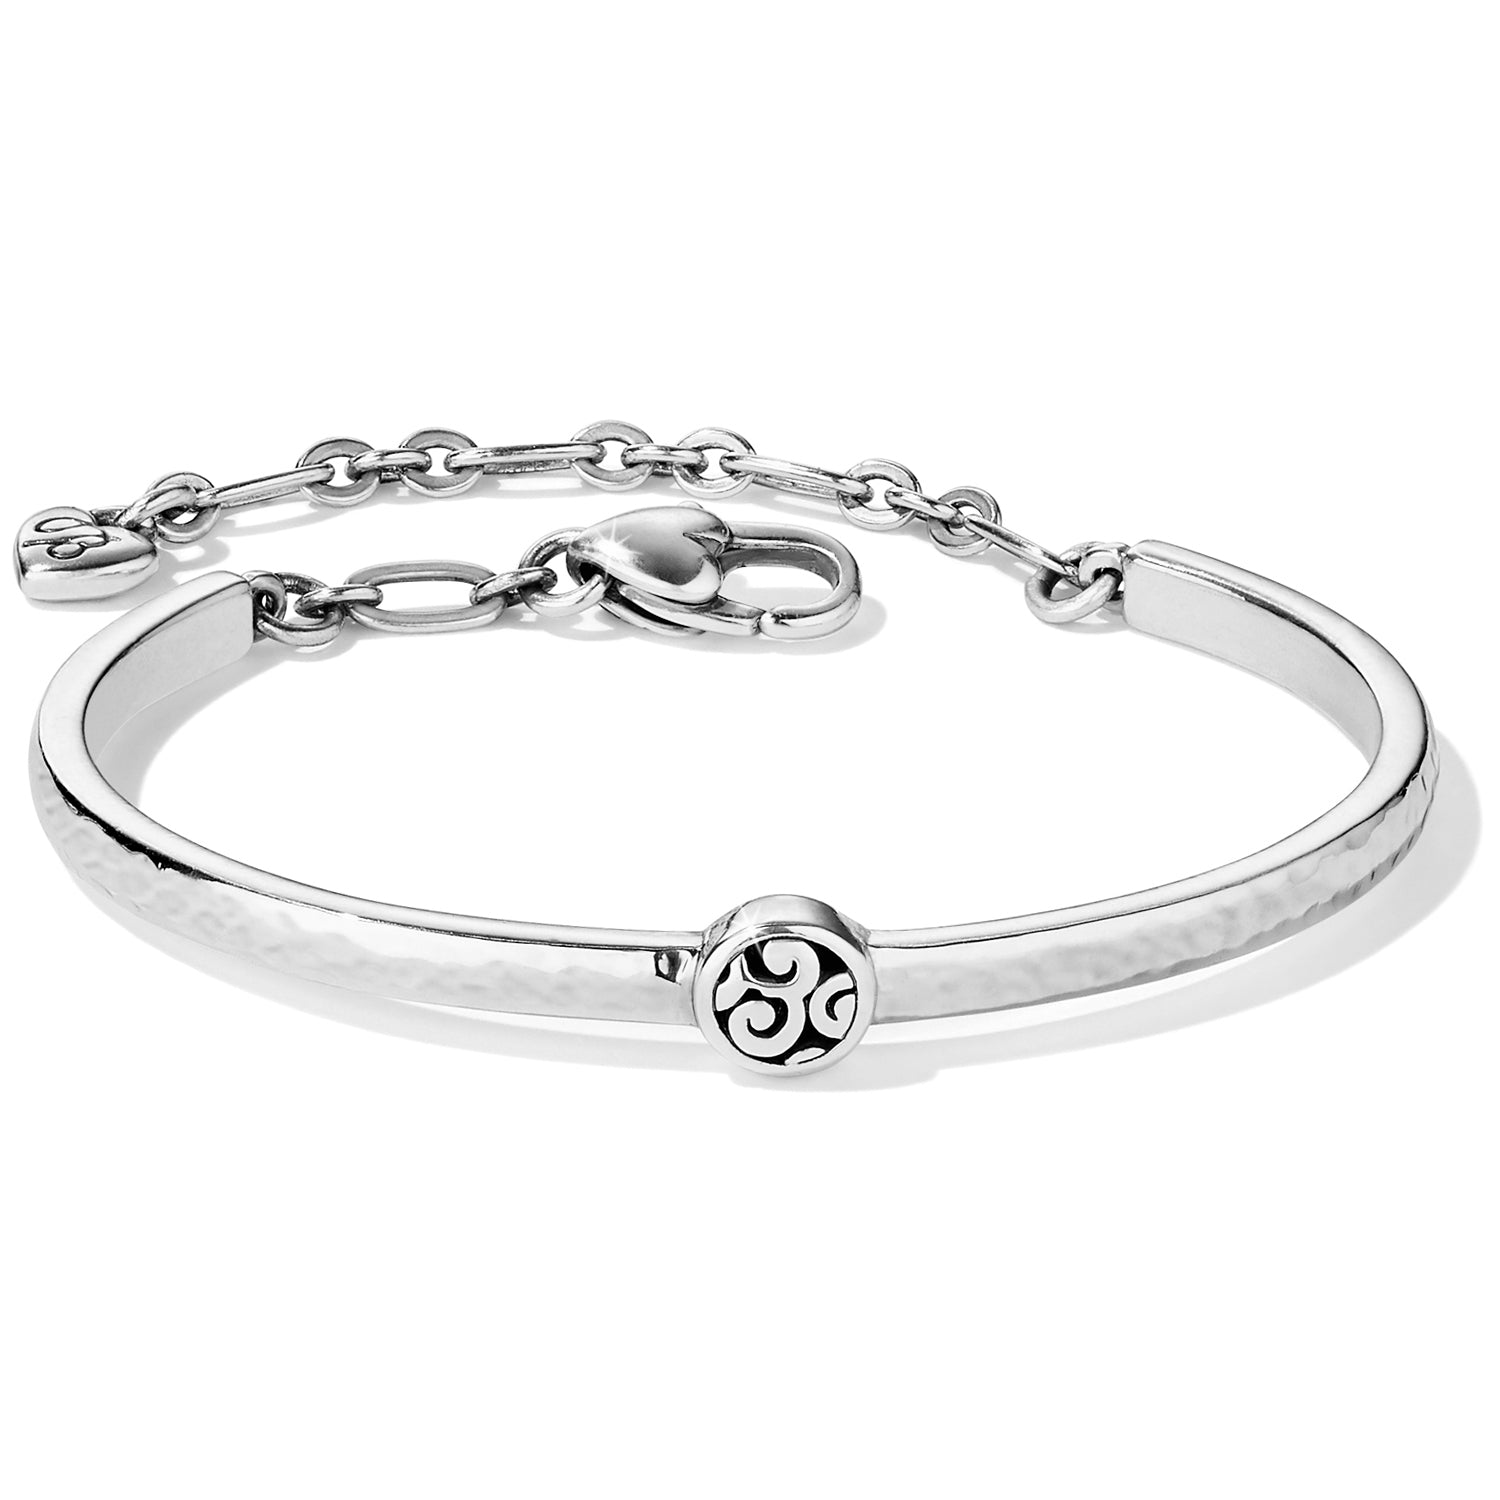 "Punctuated by a circular framework of our Mingle motif scrolls, this sleek slender bar bracelet offers a signature Brighton look and is great for stacking. Width: 5/16"" Closure: Lobster Claw Length: 7 3/8"" Total Finish: Silver plated"